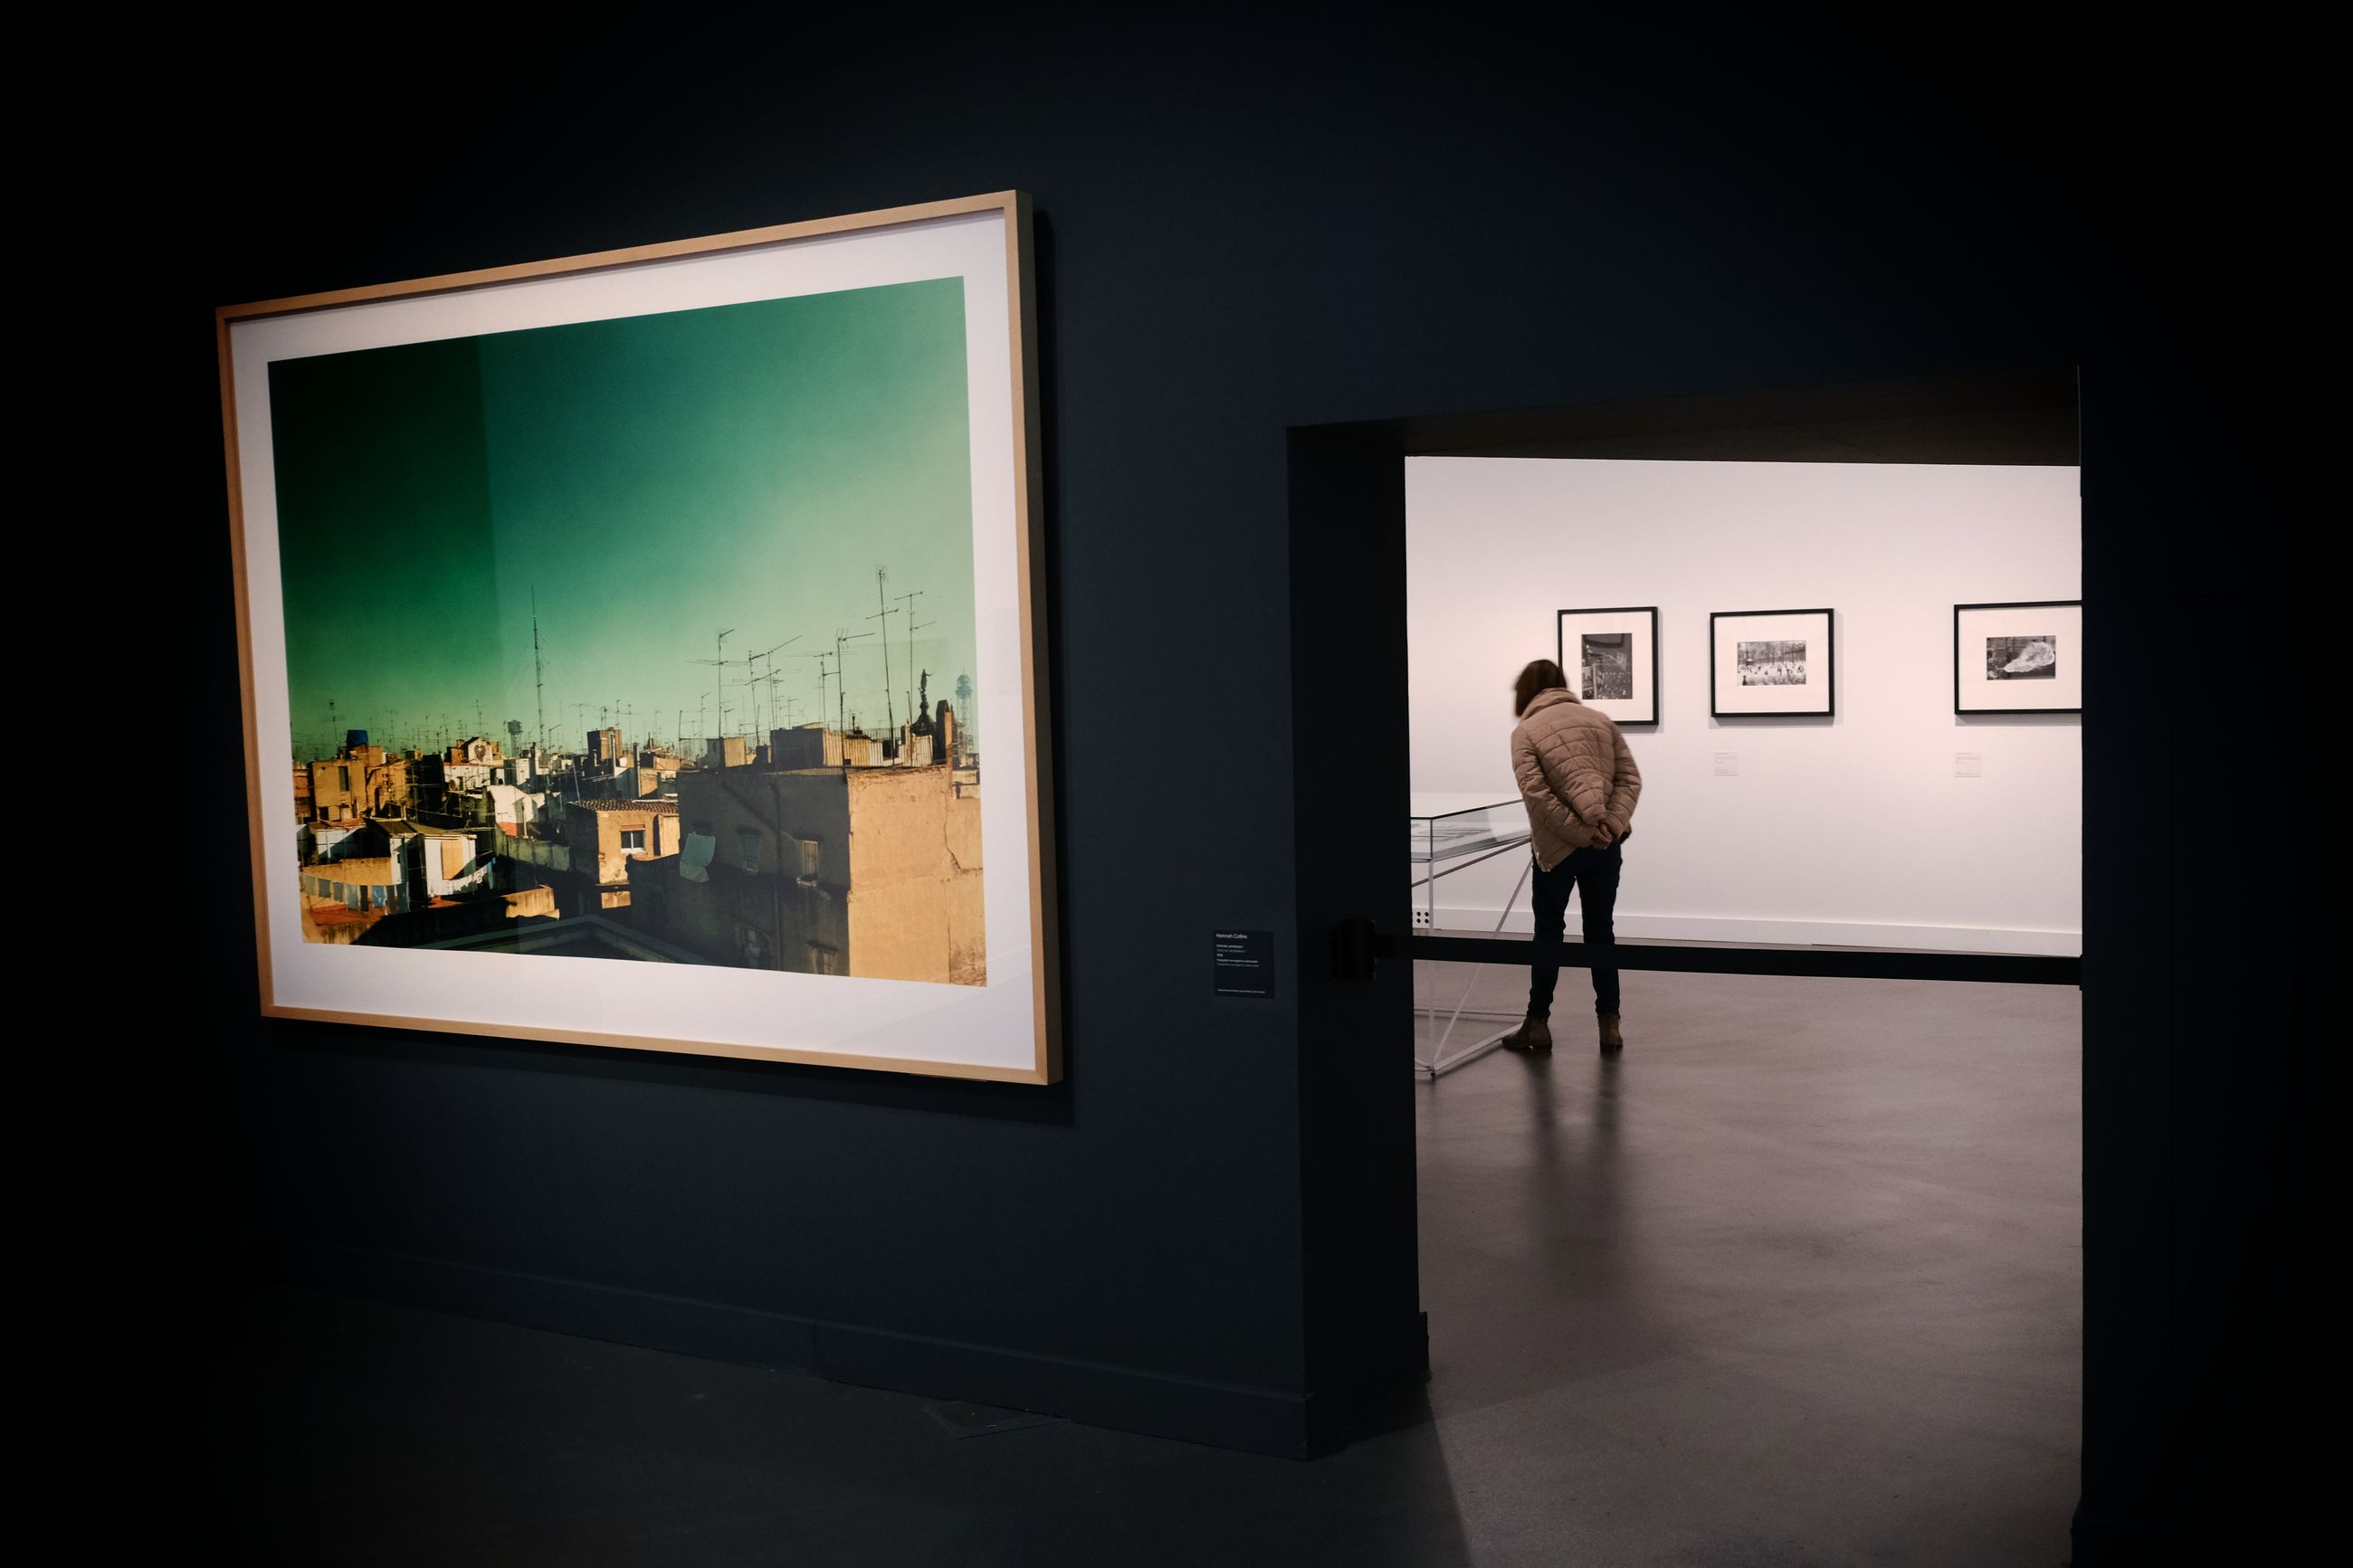 indoors, one person, frame, lifestyles, real people, picture frame, museum, standing, home interior, architecture, domestic room, door, rear view, art museum, men, entrance, full length, leisure activity, exhibition